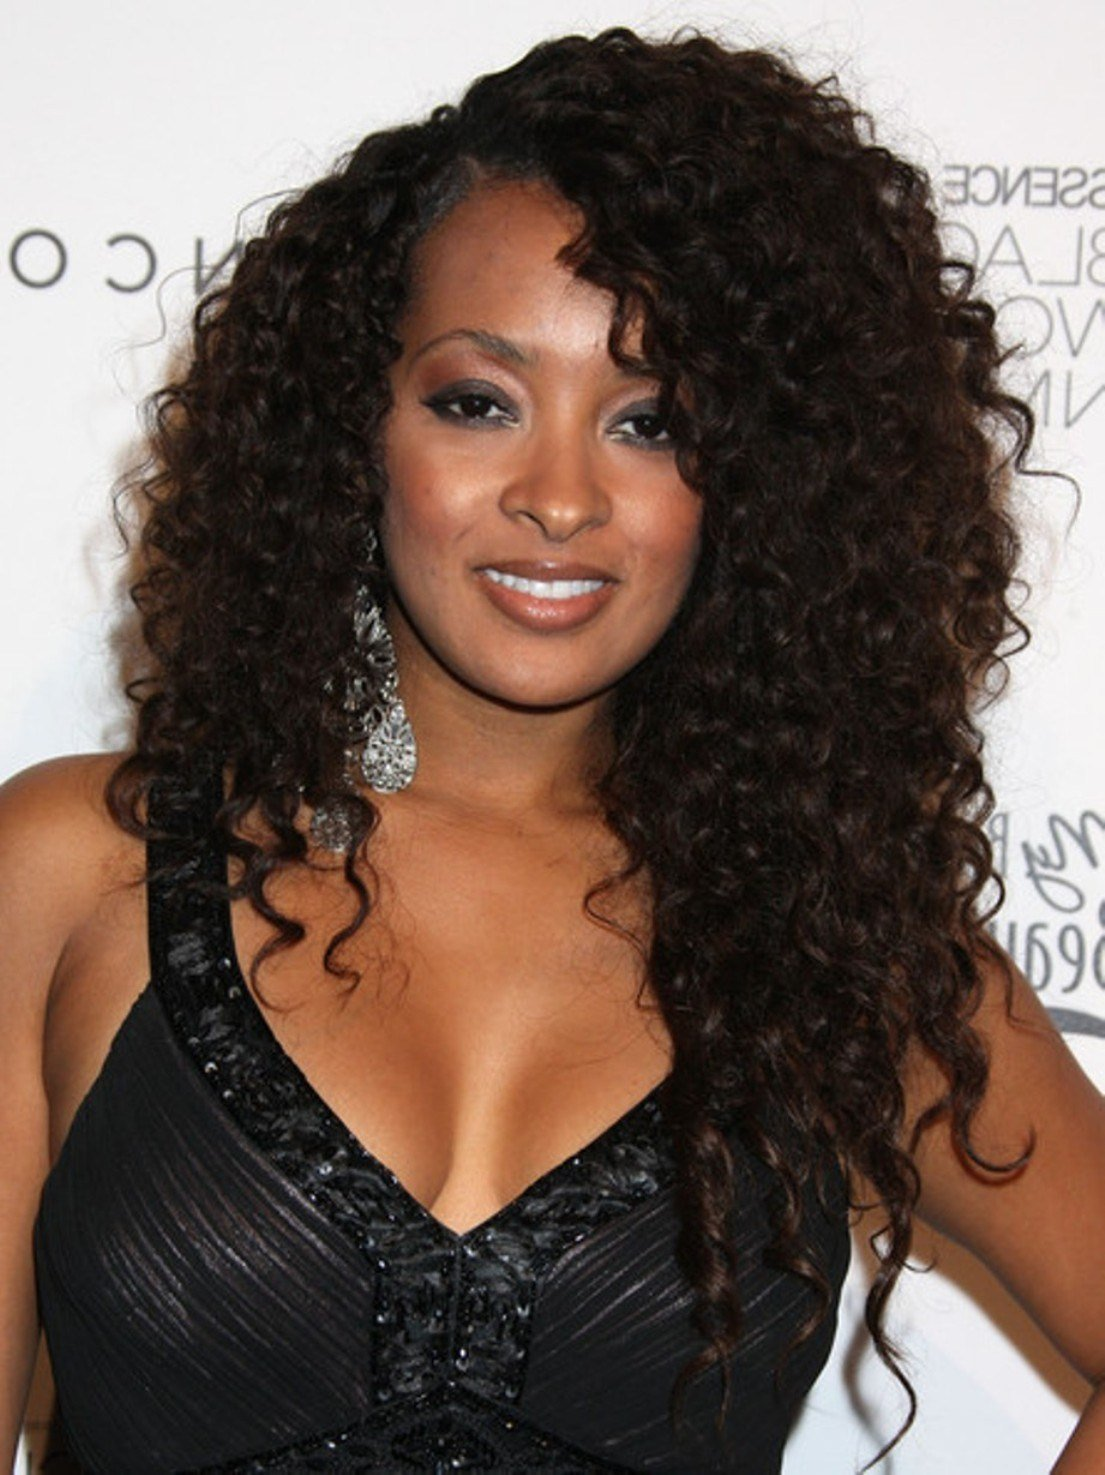 The Best Black Hairstyles With Curls Fade Haircut Pictures